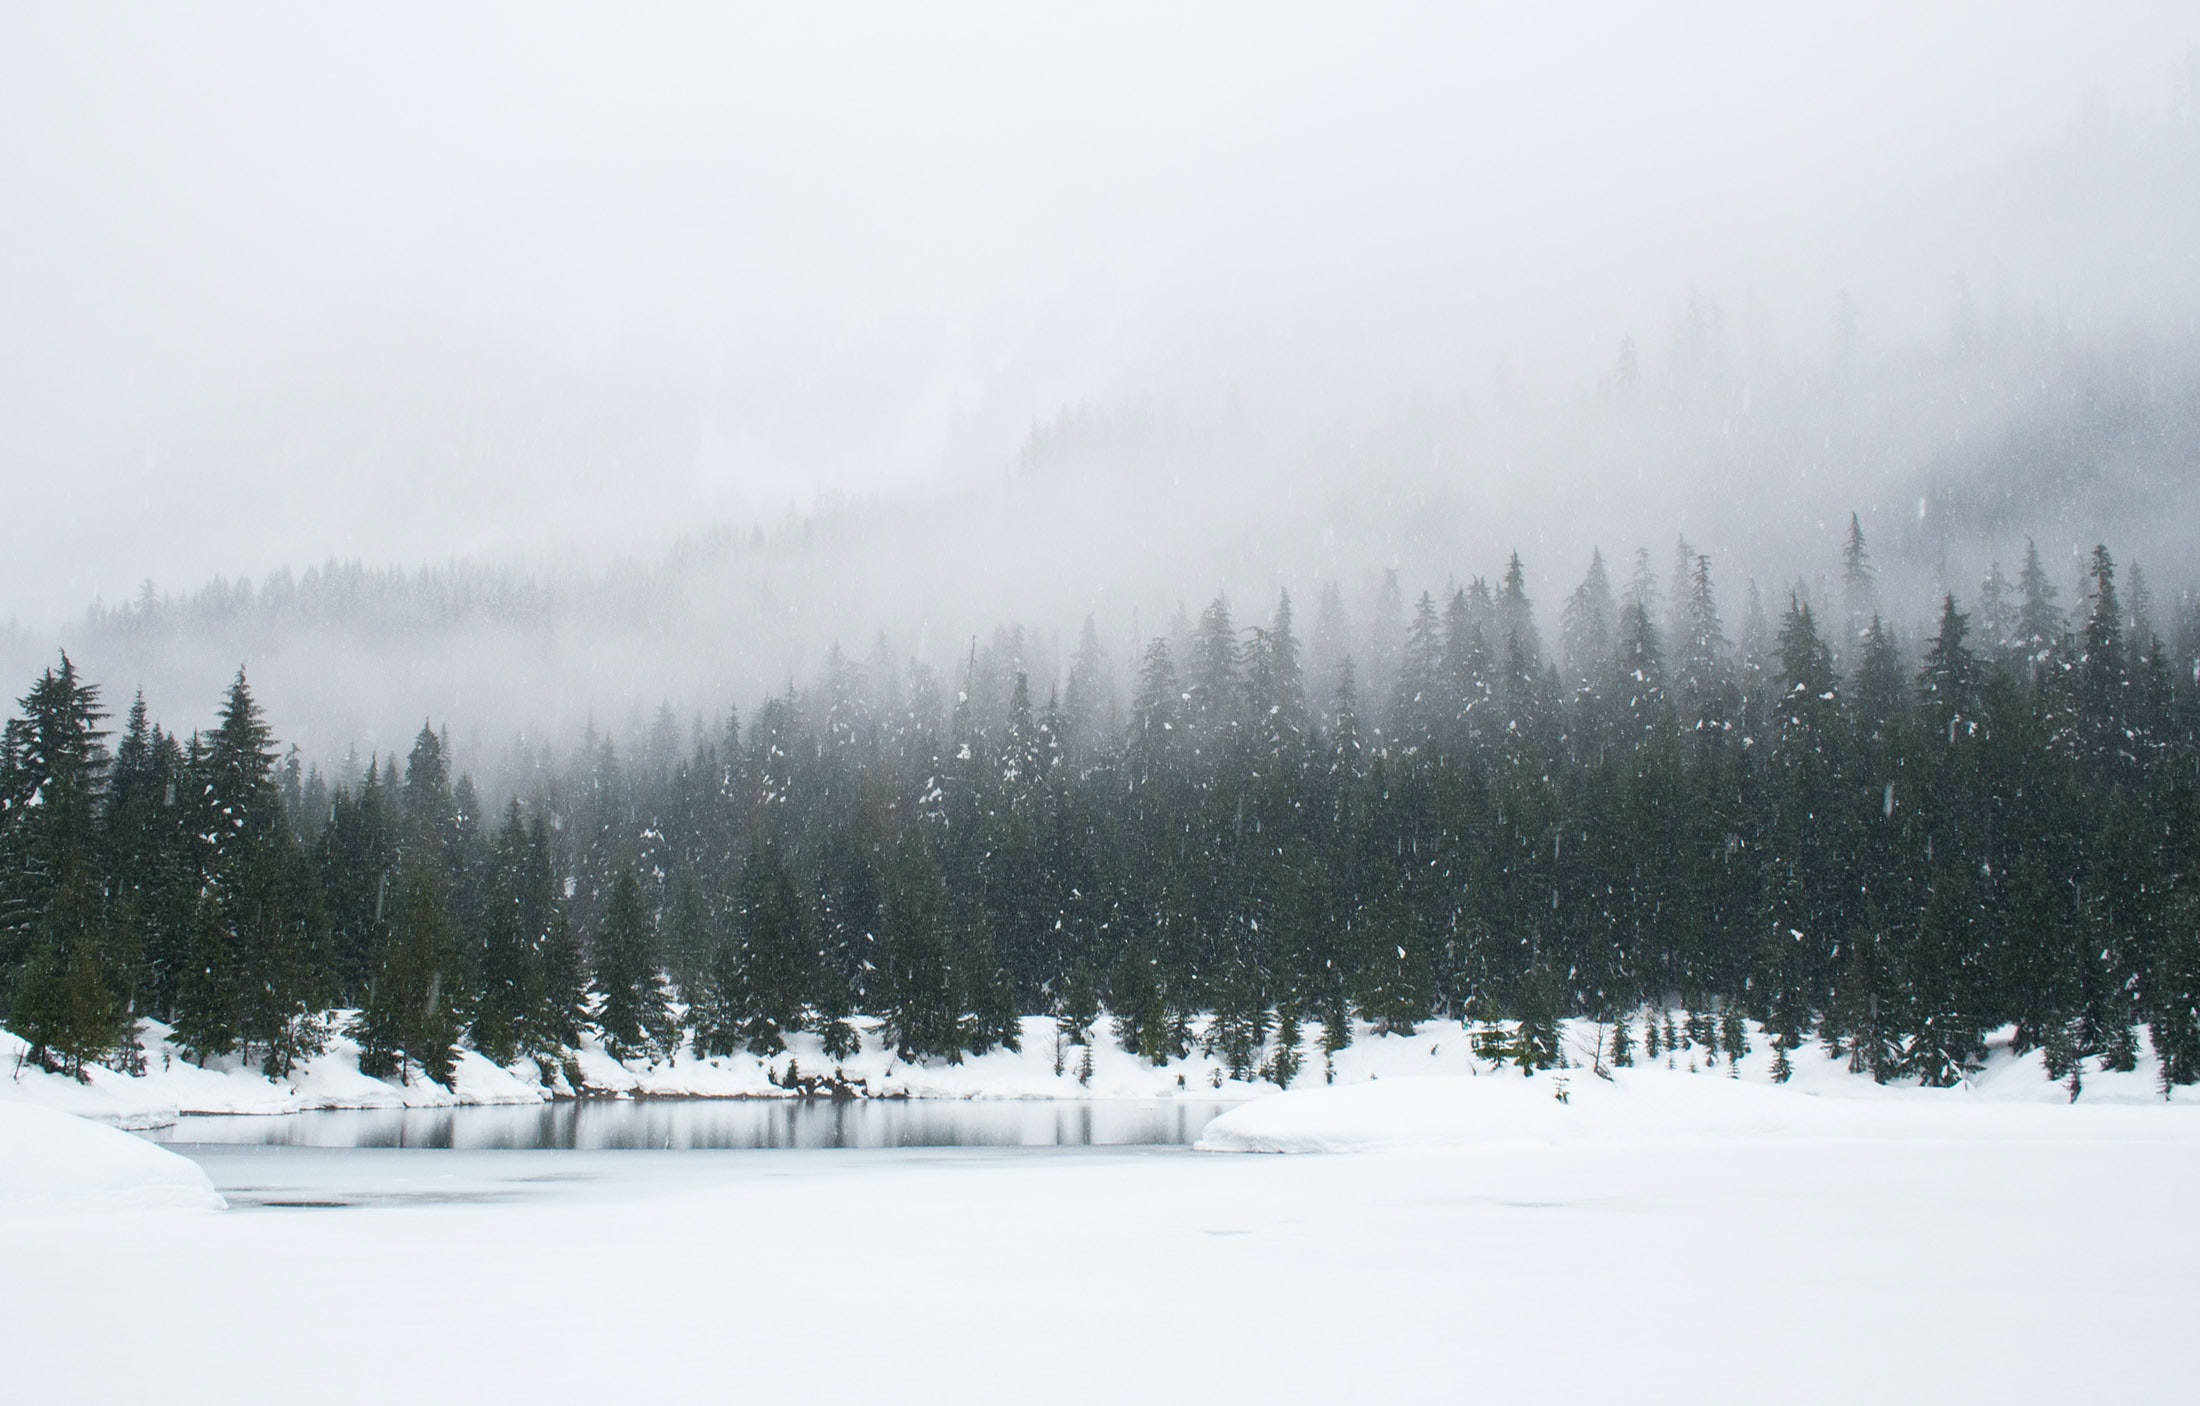 scene of a frozen lake surrounded by snow and pine trees